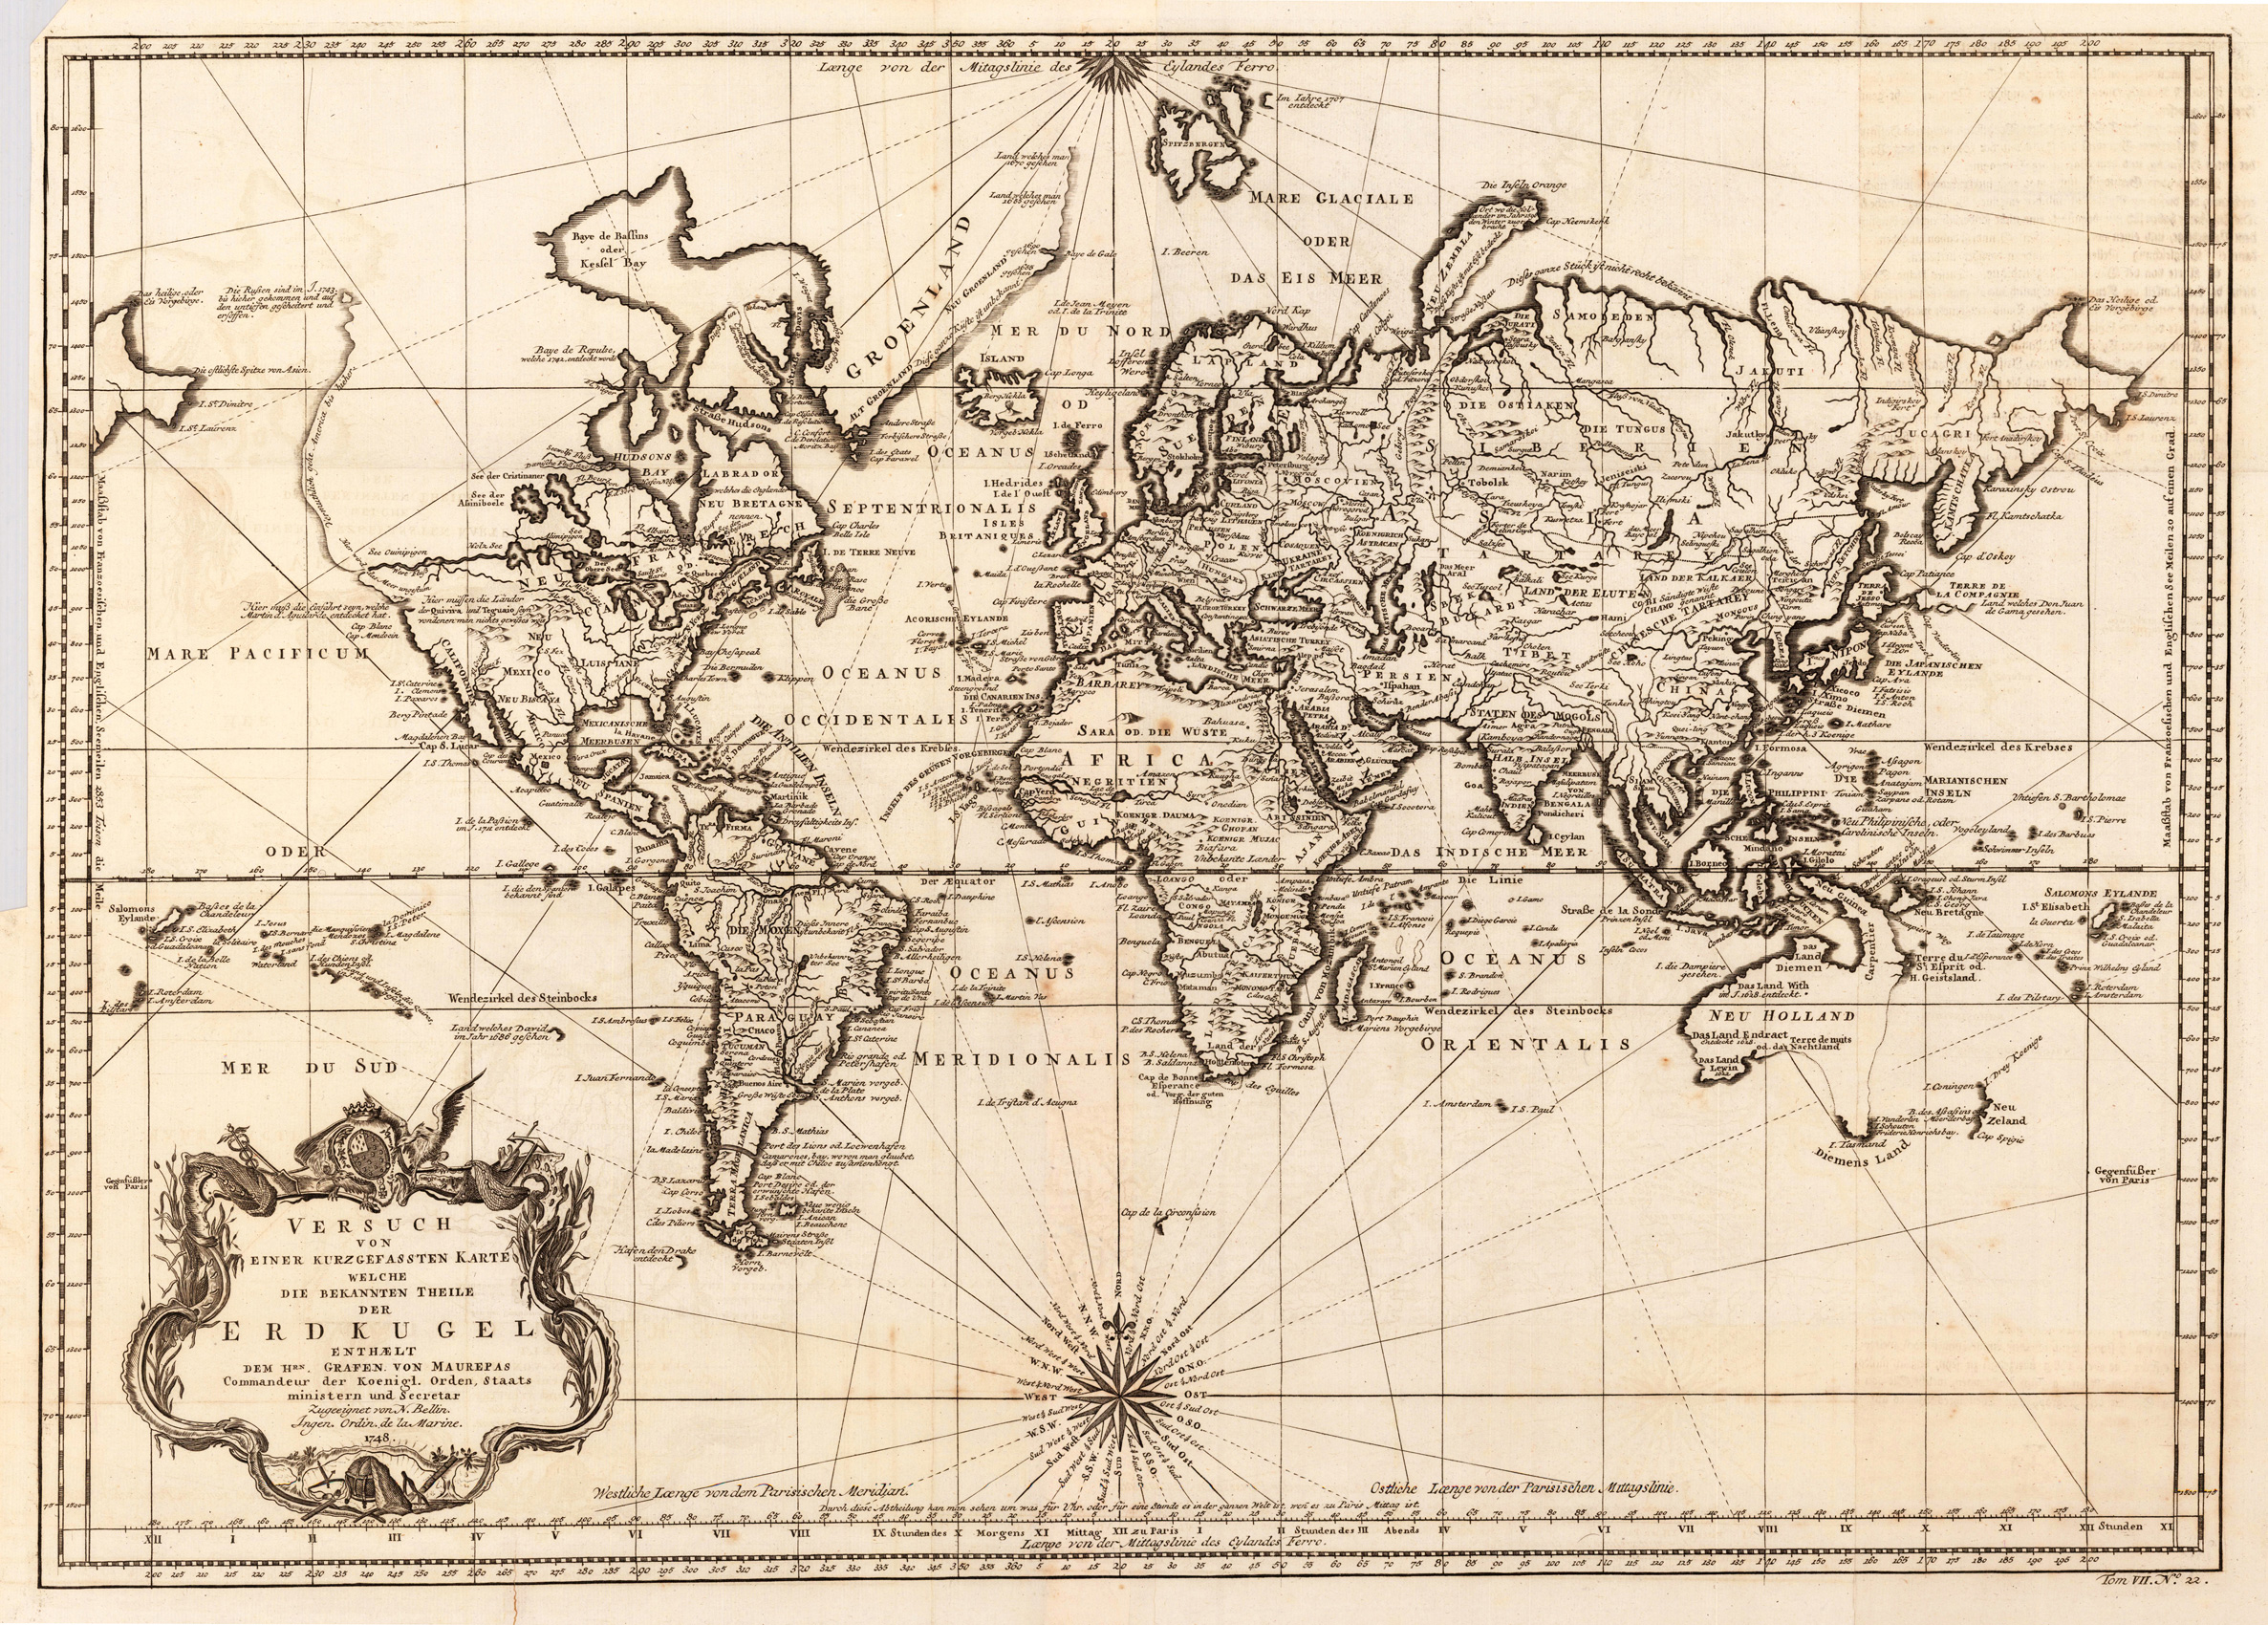 World map (1748)